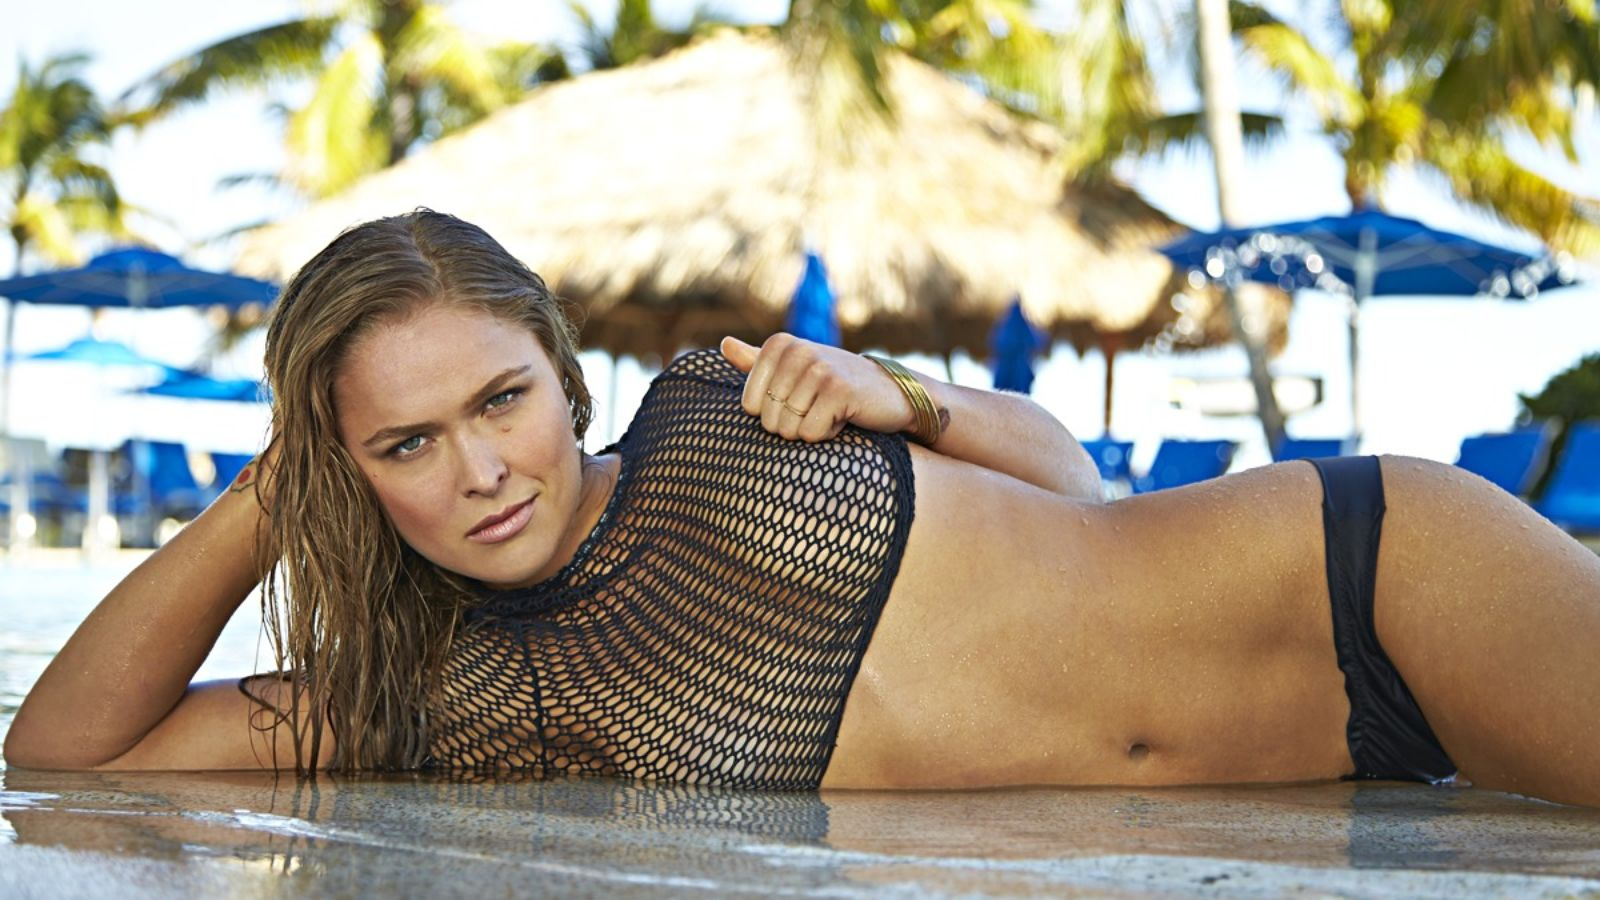 Paparazzi Hot Ronda Rousey naked photo 2017